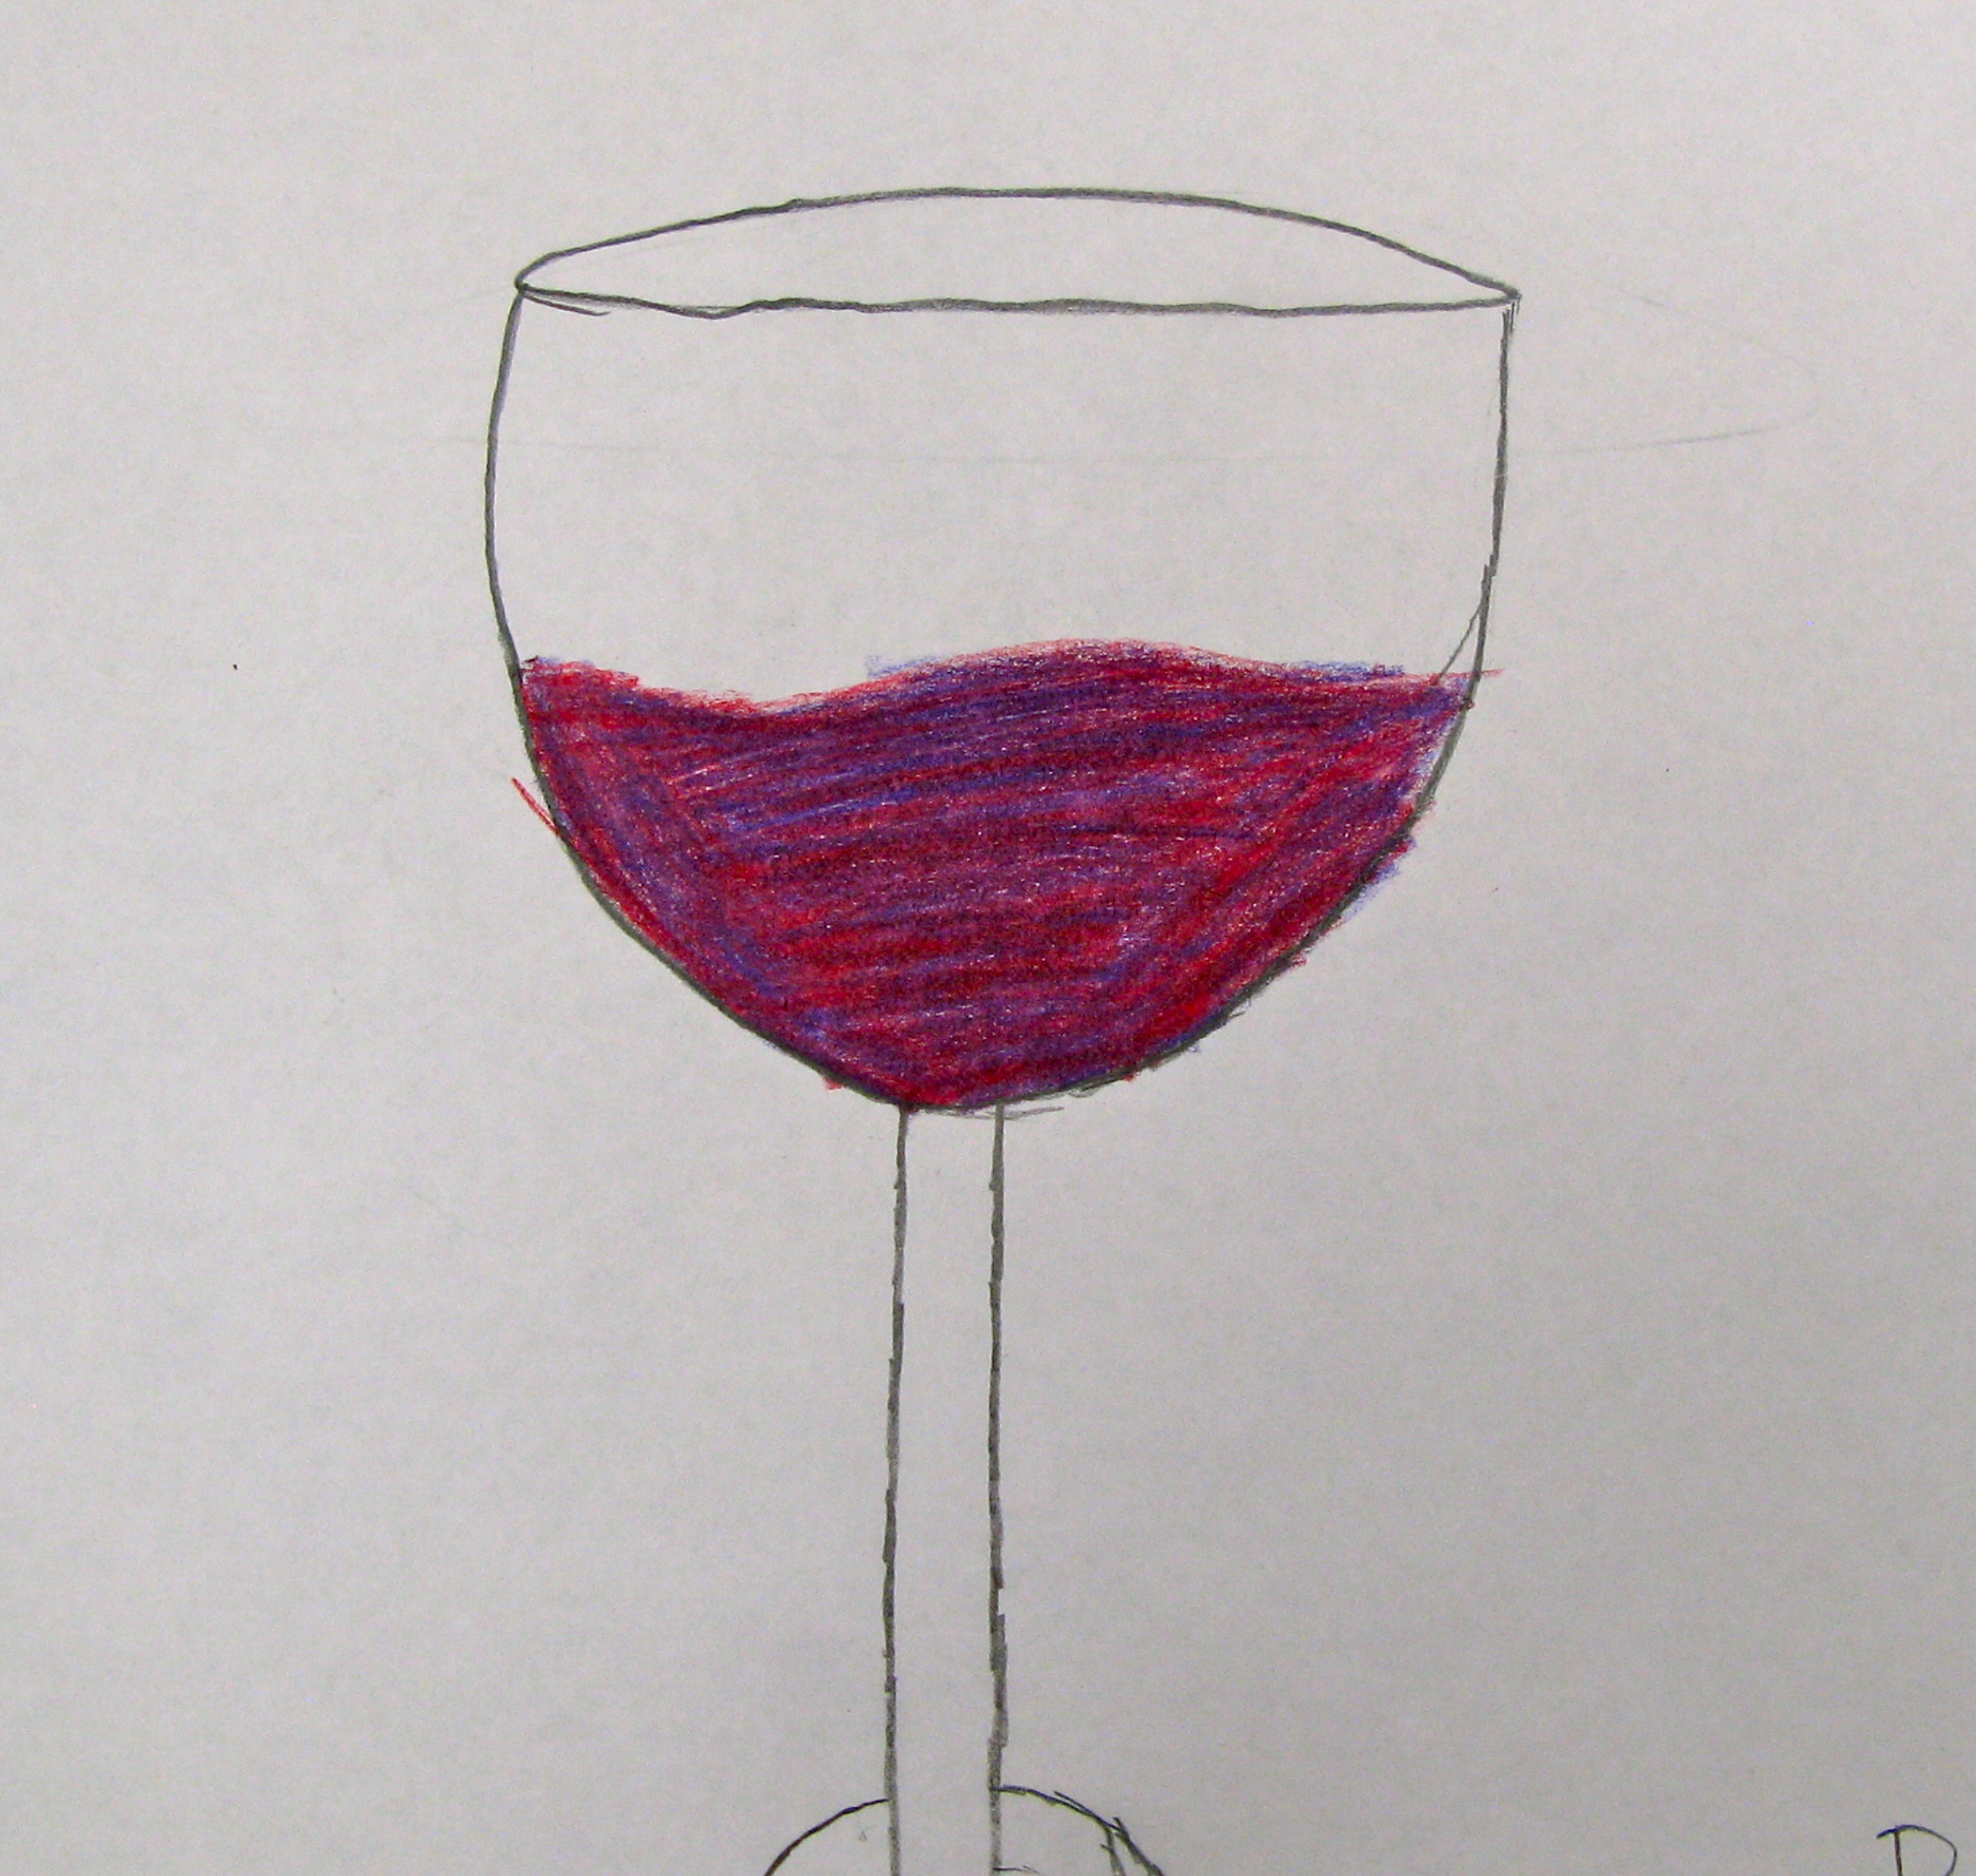 Where To Find Wine Glasses Art For Sharing Find Out What Middle Schoolers Are